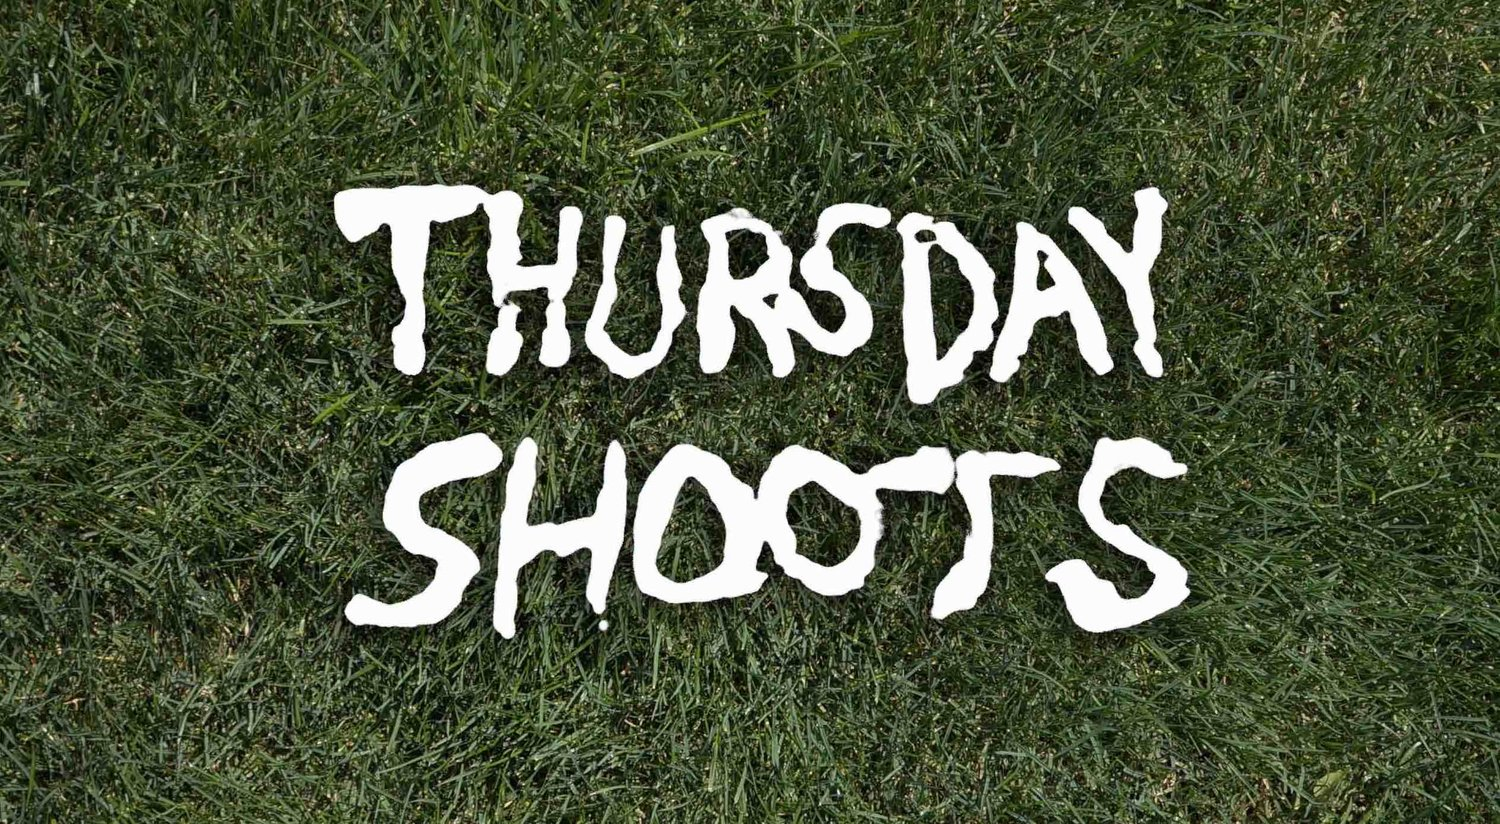 Thursday Shoots